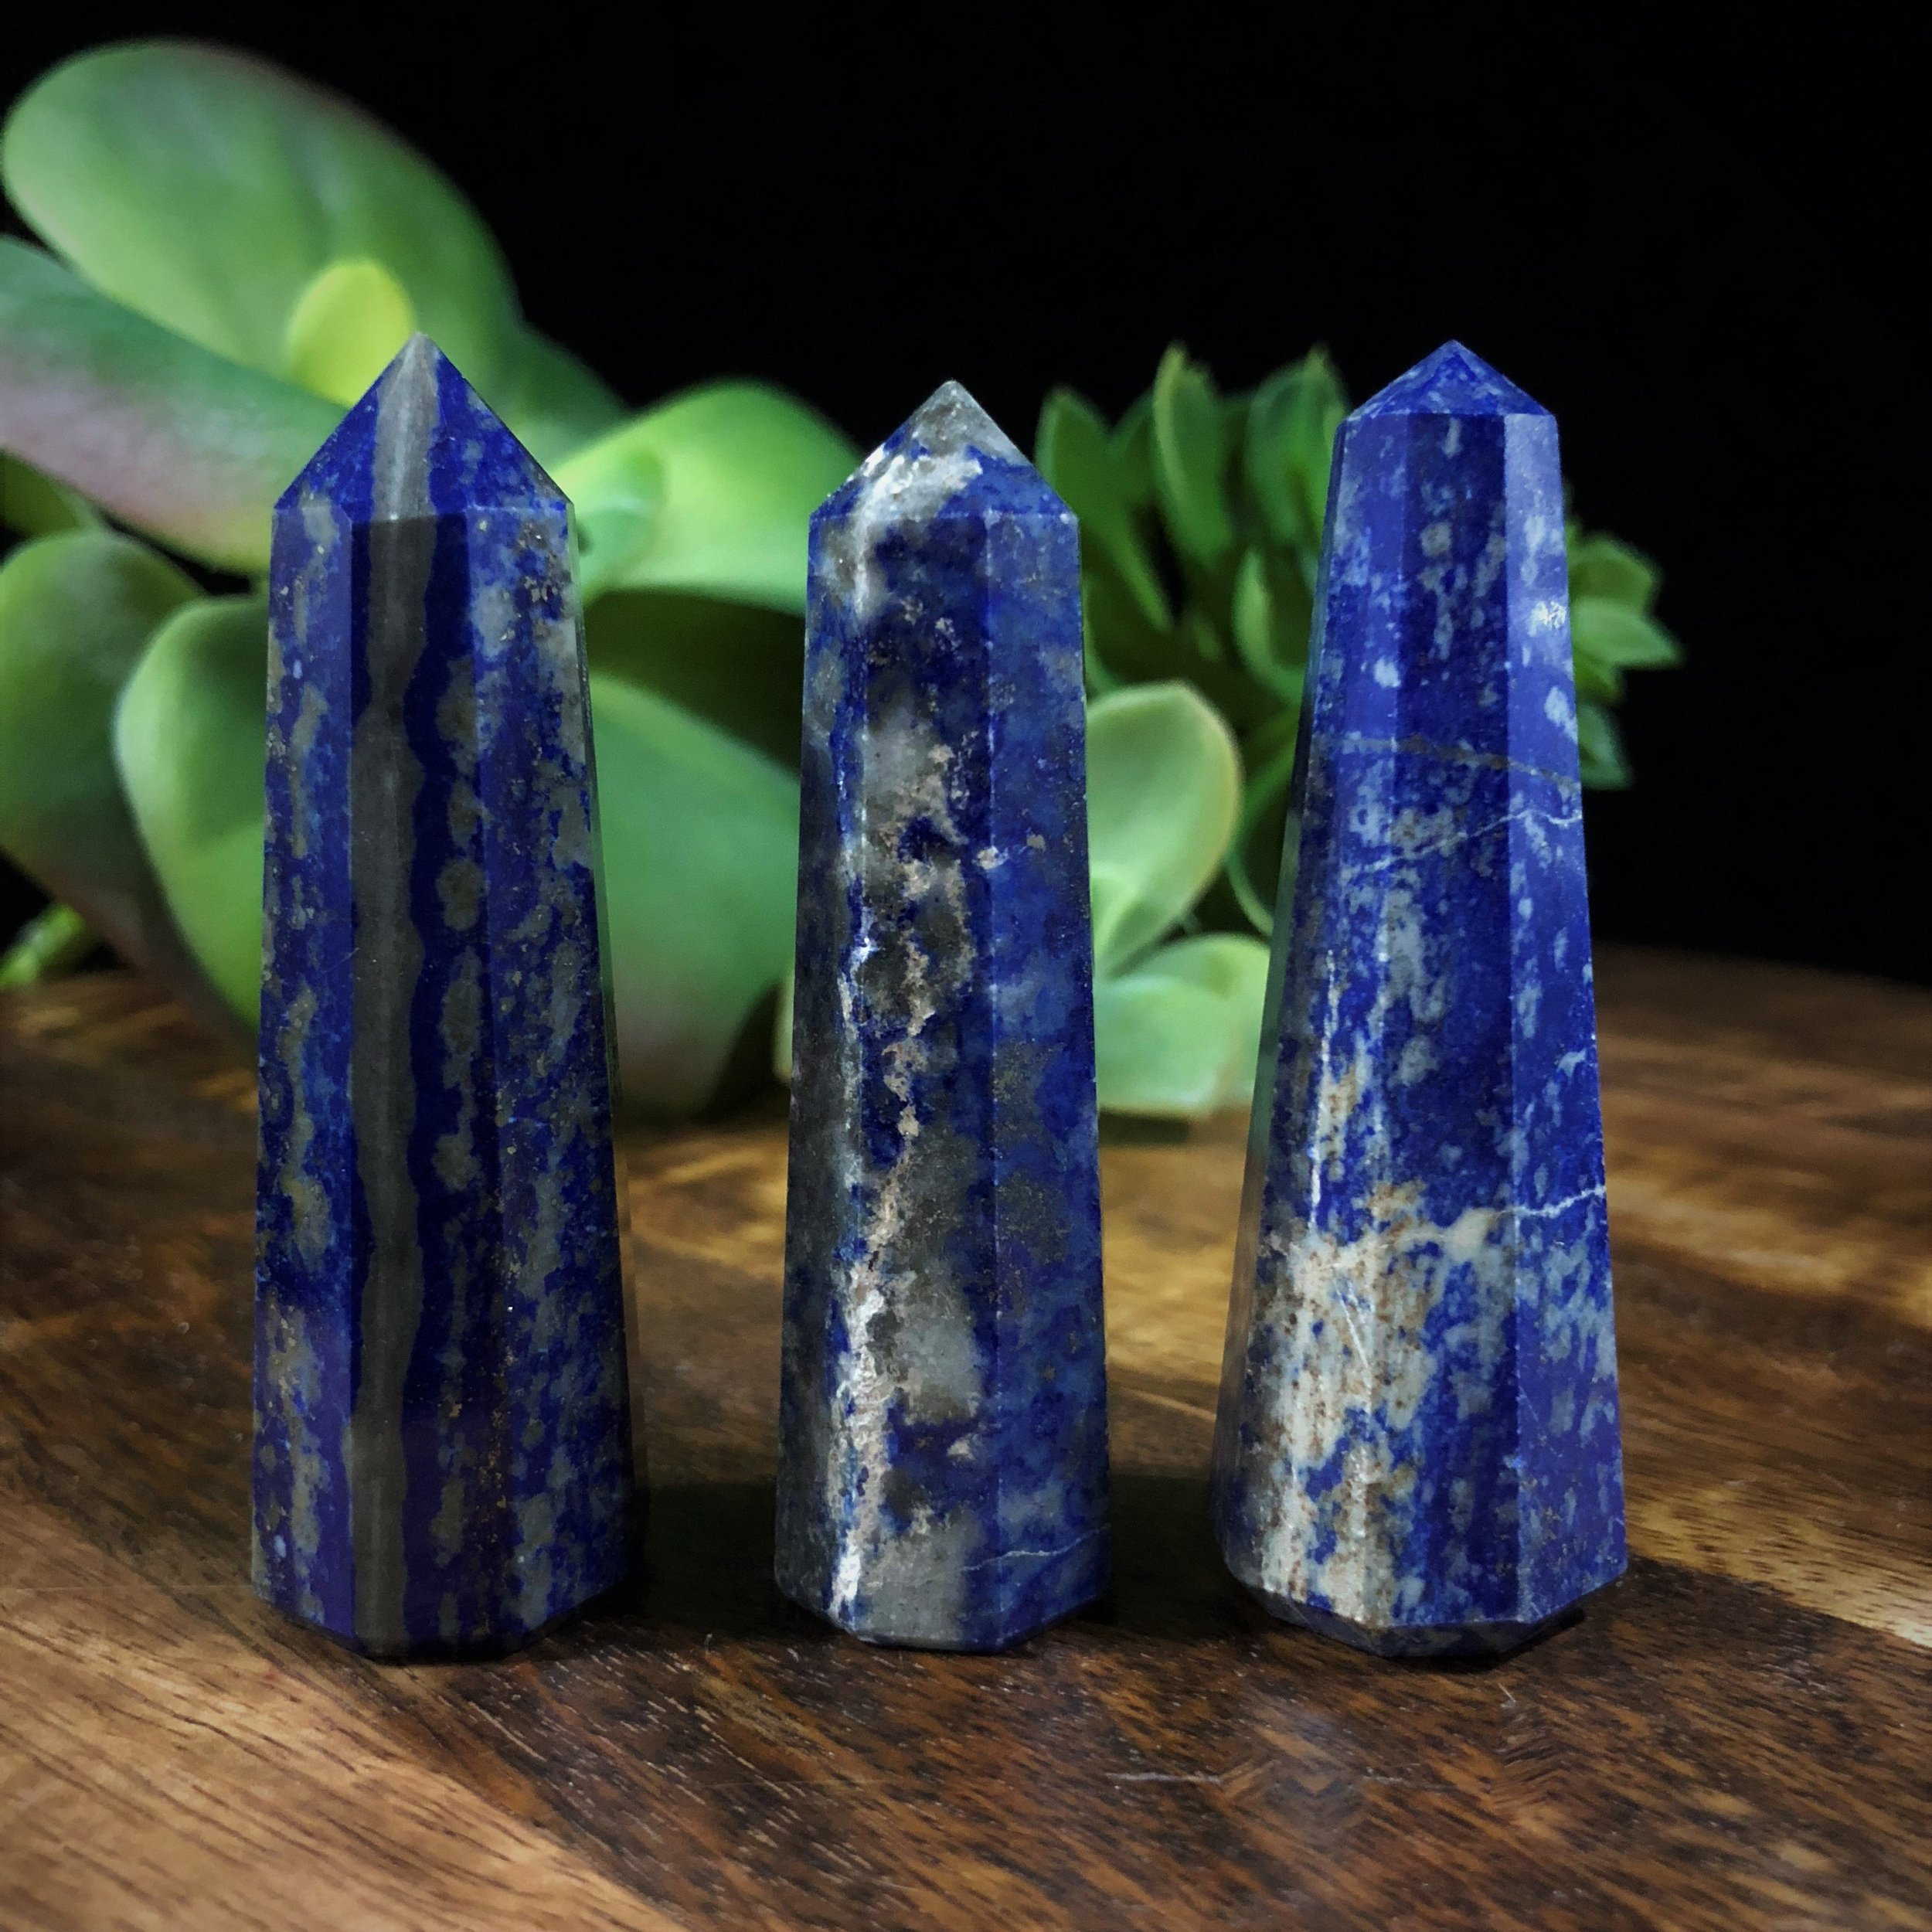 Lapis Lazuli  is one of the most sought after stones in use since man's history began. Its deep, celestial blue remains the symbol of royalty and honor, gods and power, spirit and vision. It is a universal symbol of wisdom and truth.